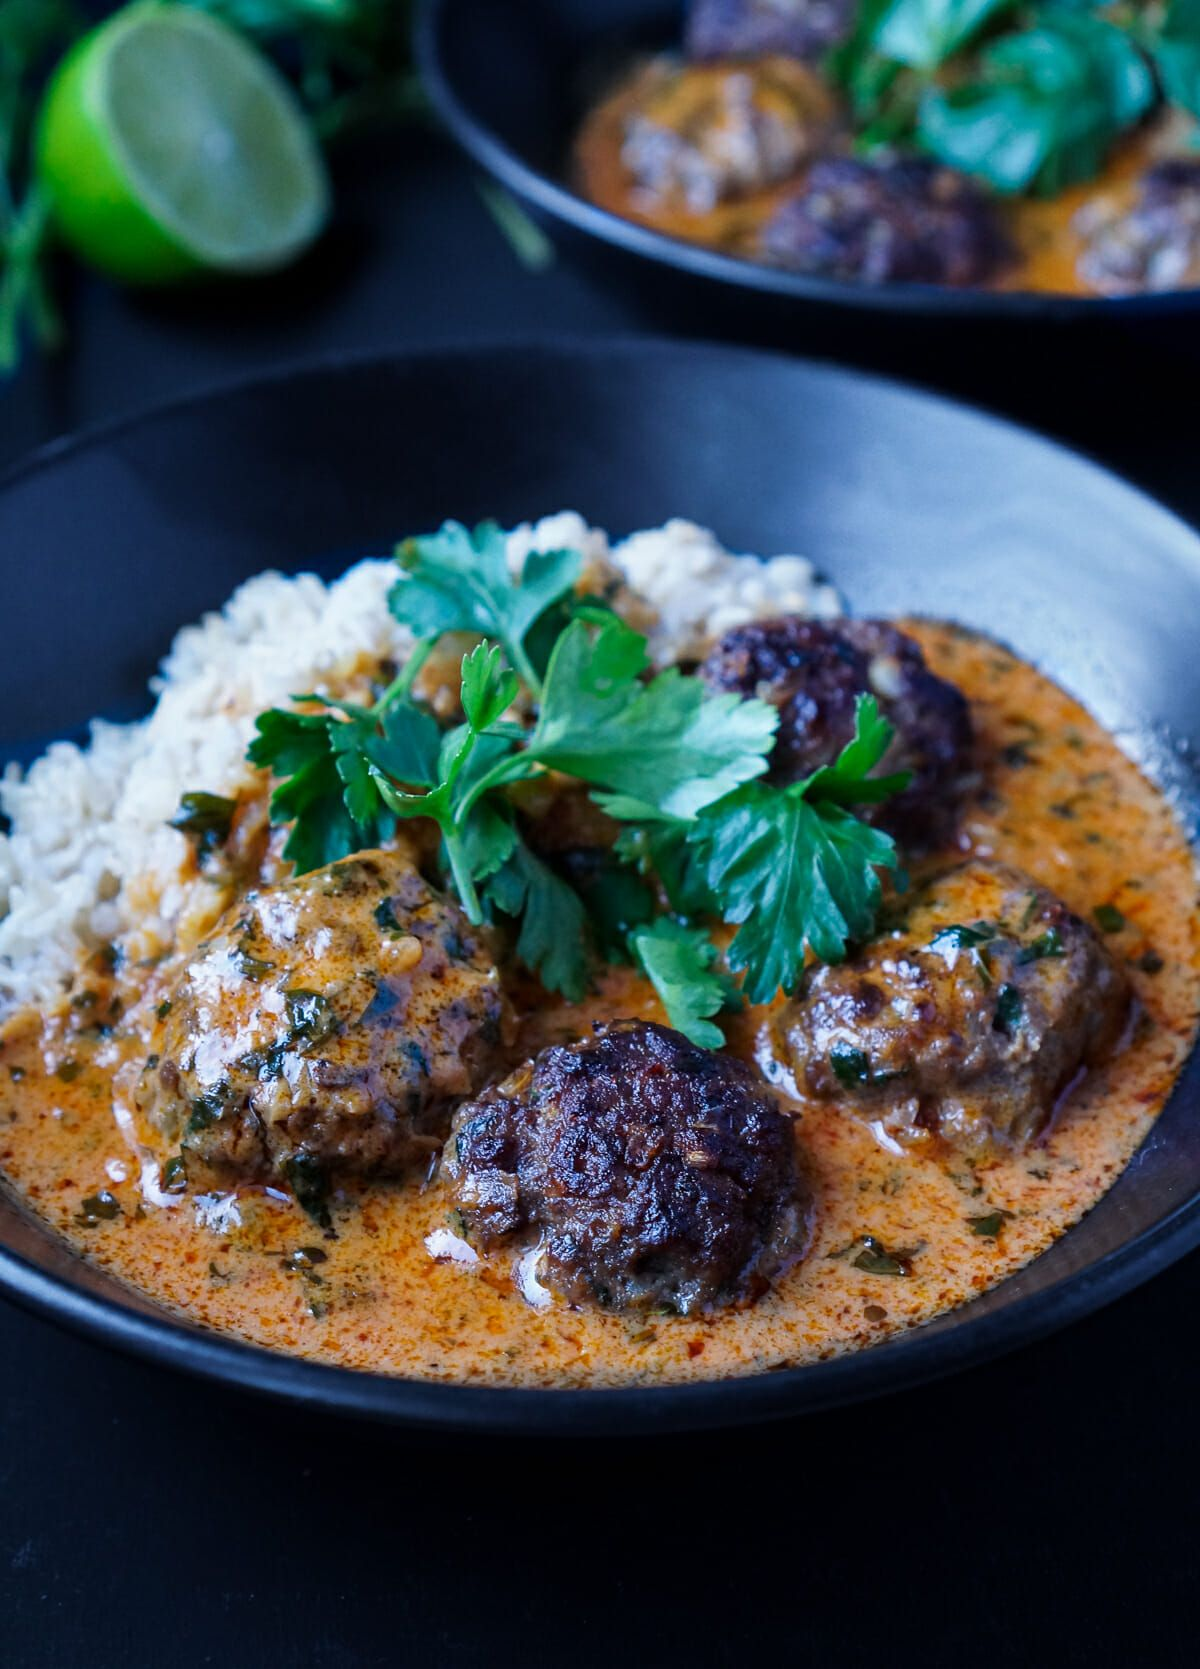 Photo of Red Thai curry with hot meatballs and whole grain rice